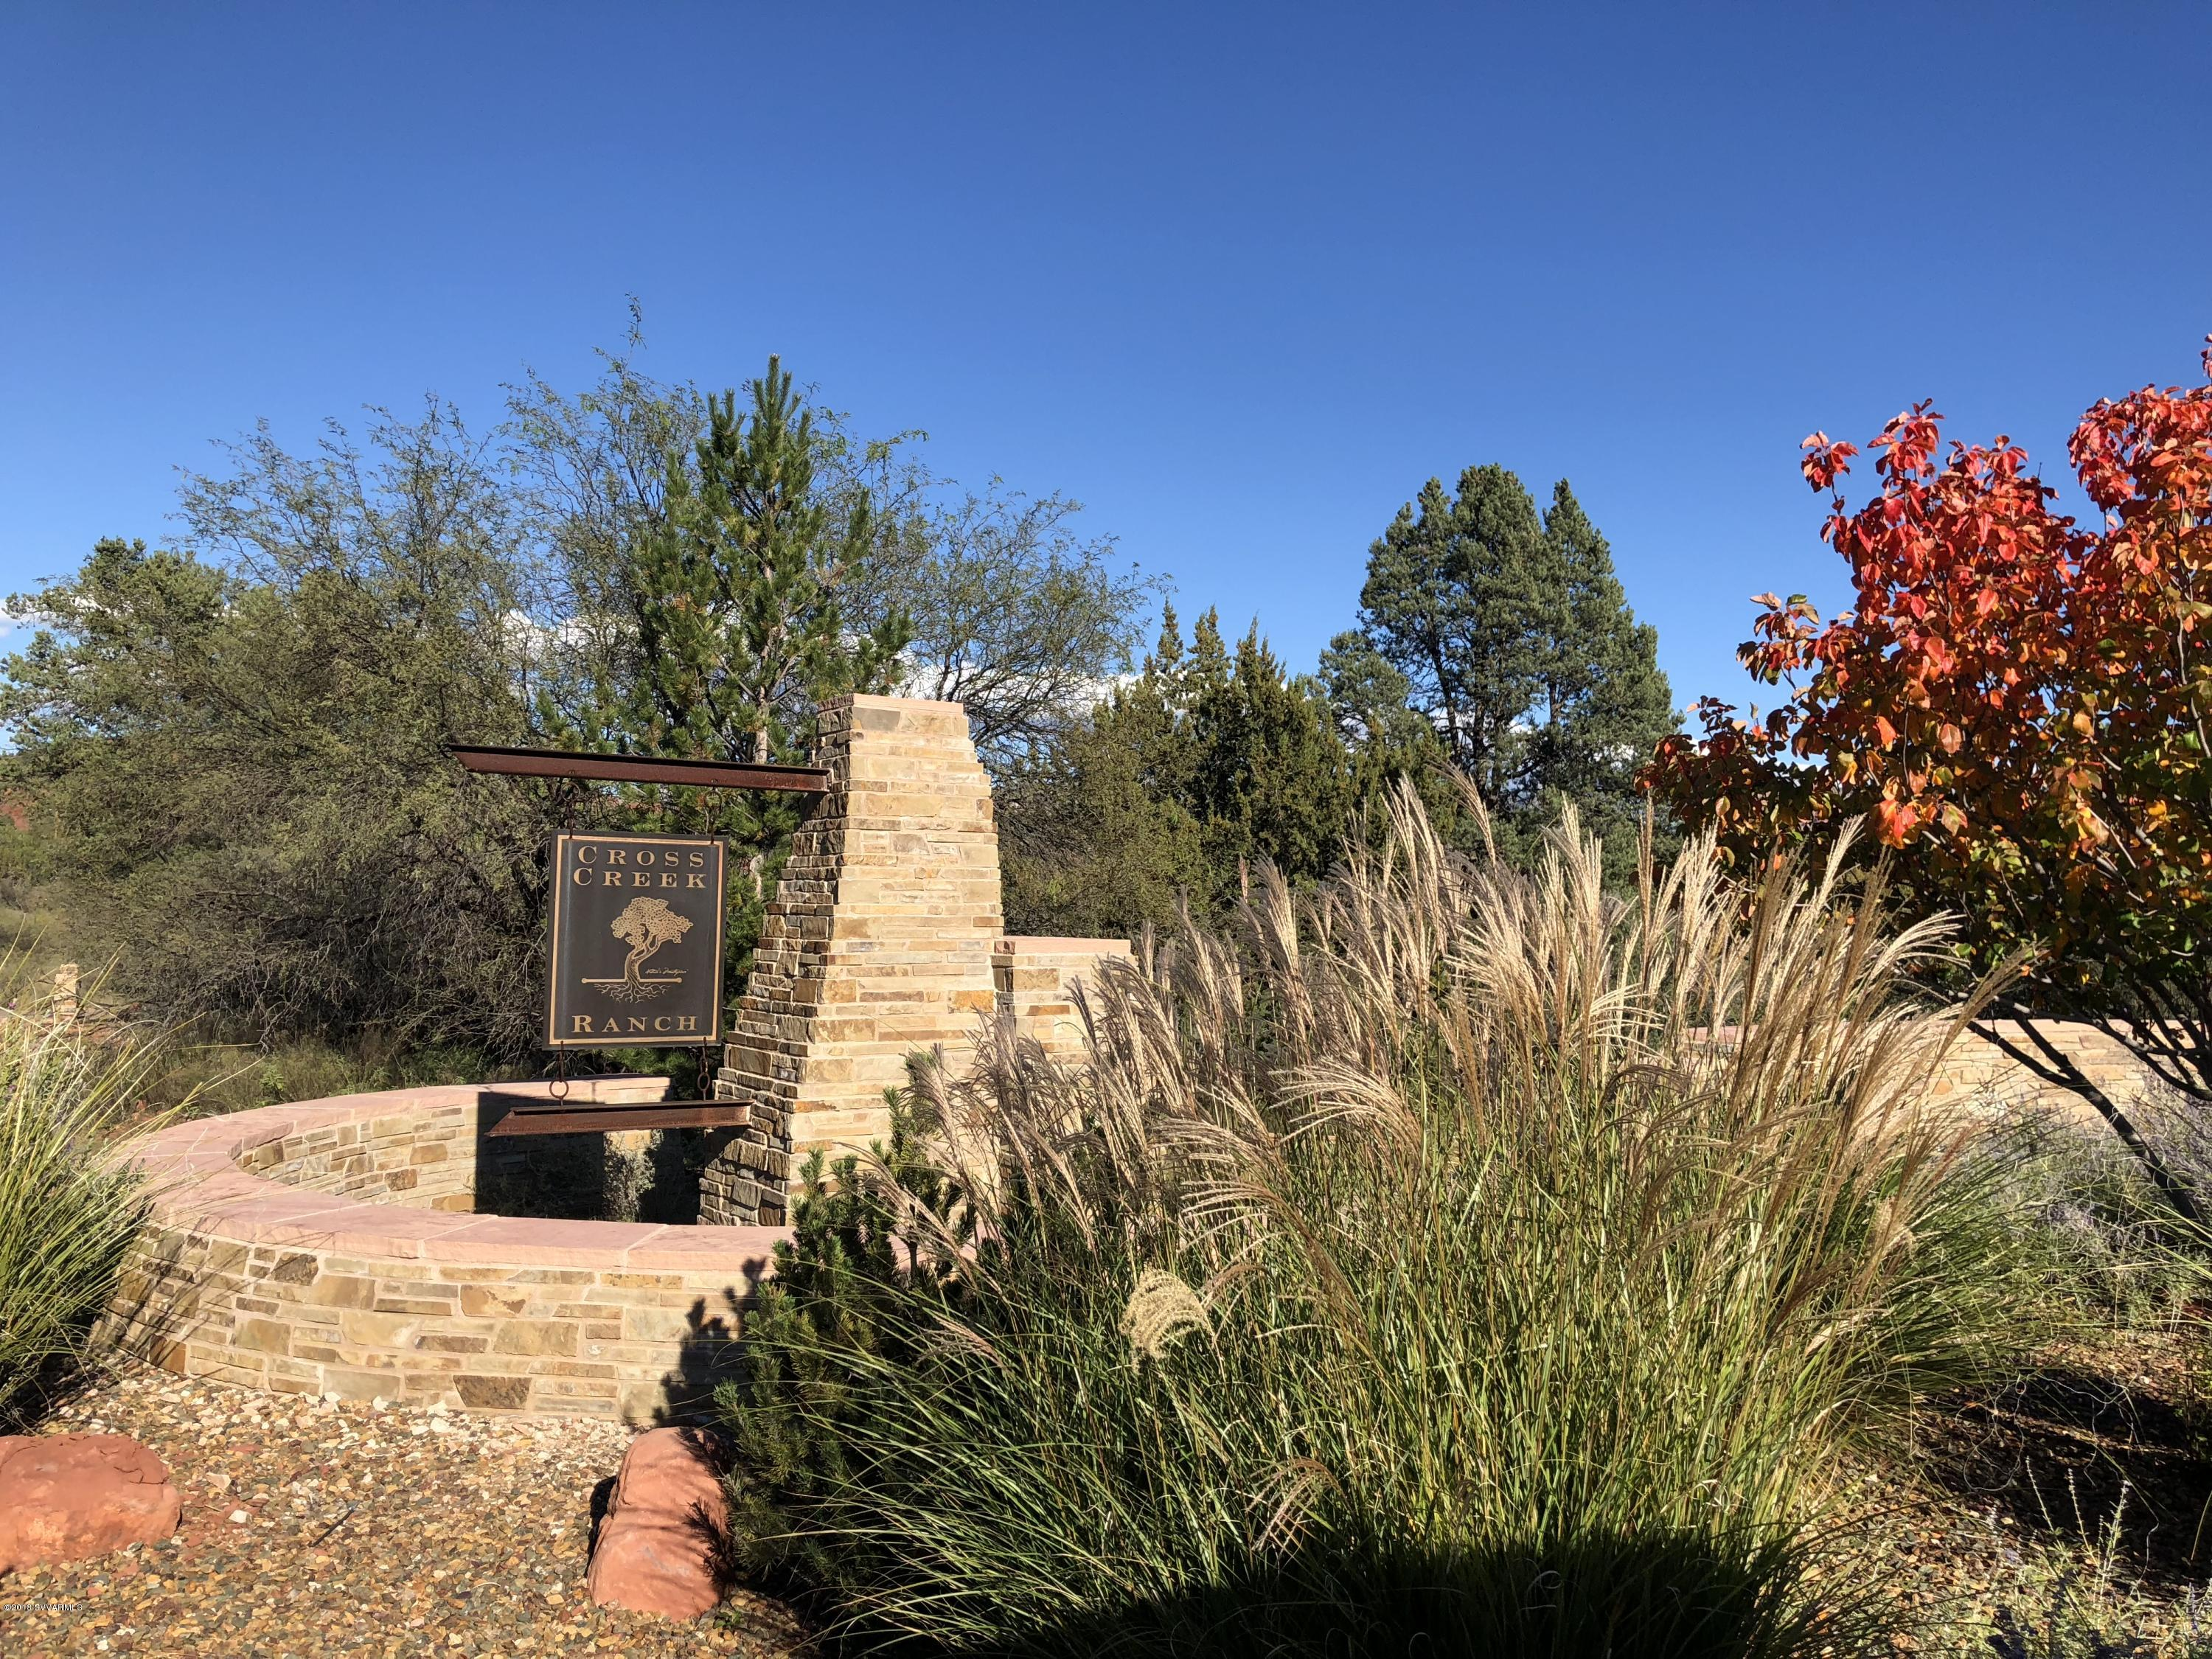 305 Cross Creek Sedona, AZ 86336